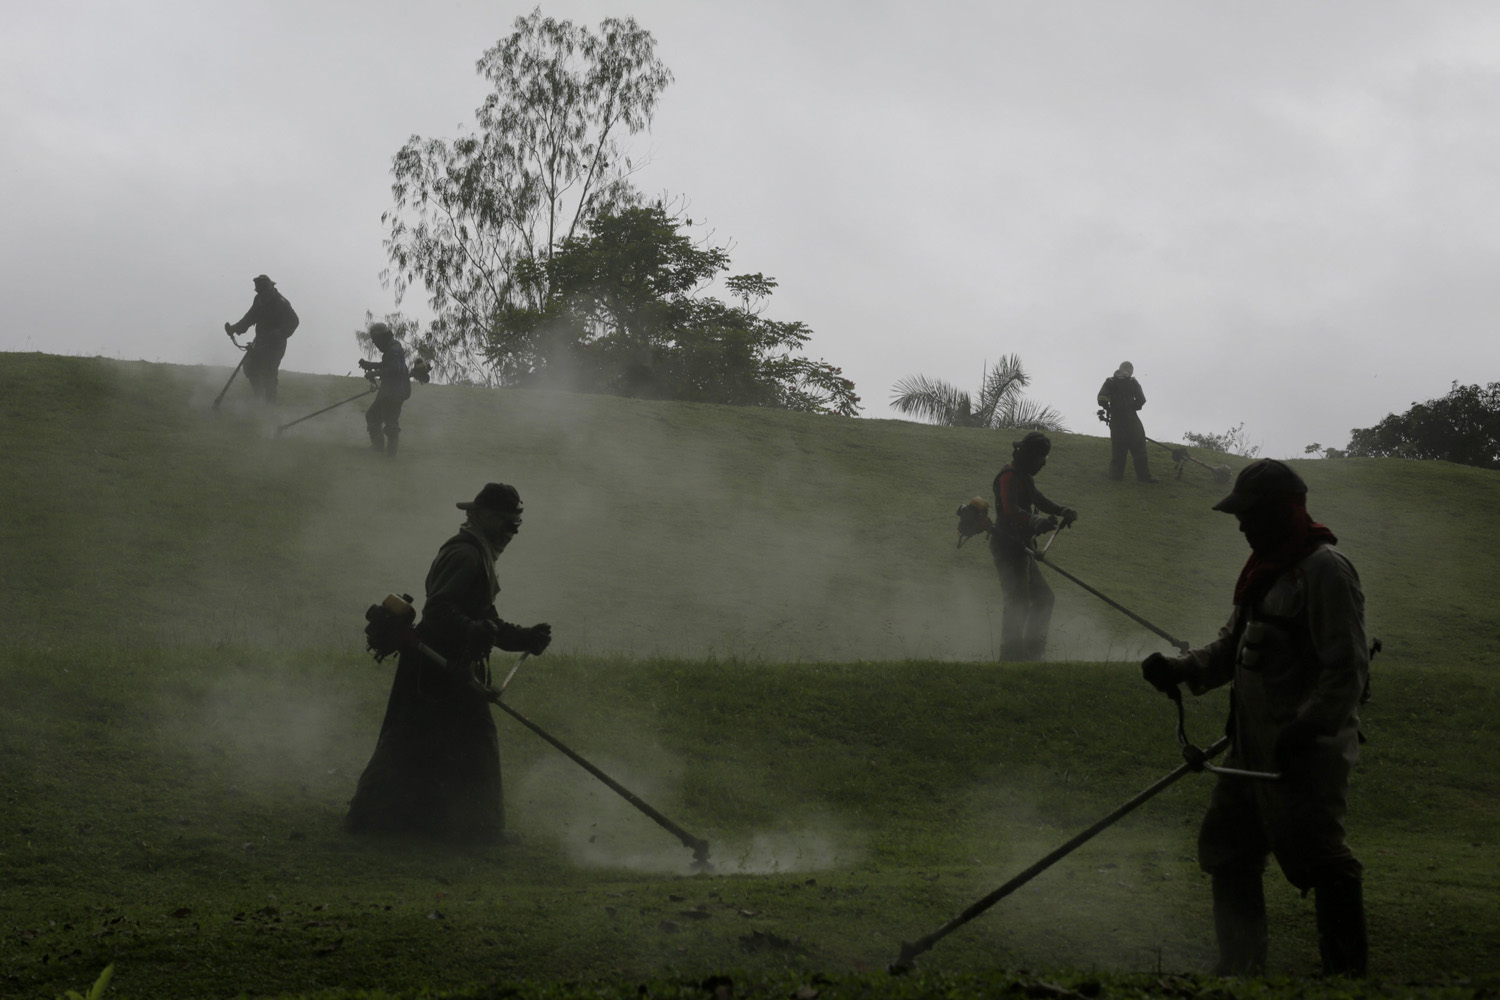 Sept. 20, 2013. Laborers cut grass in the City of Knowledge in Panama City.